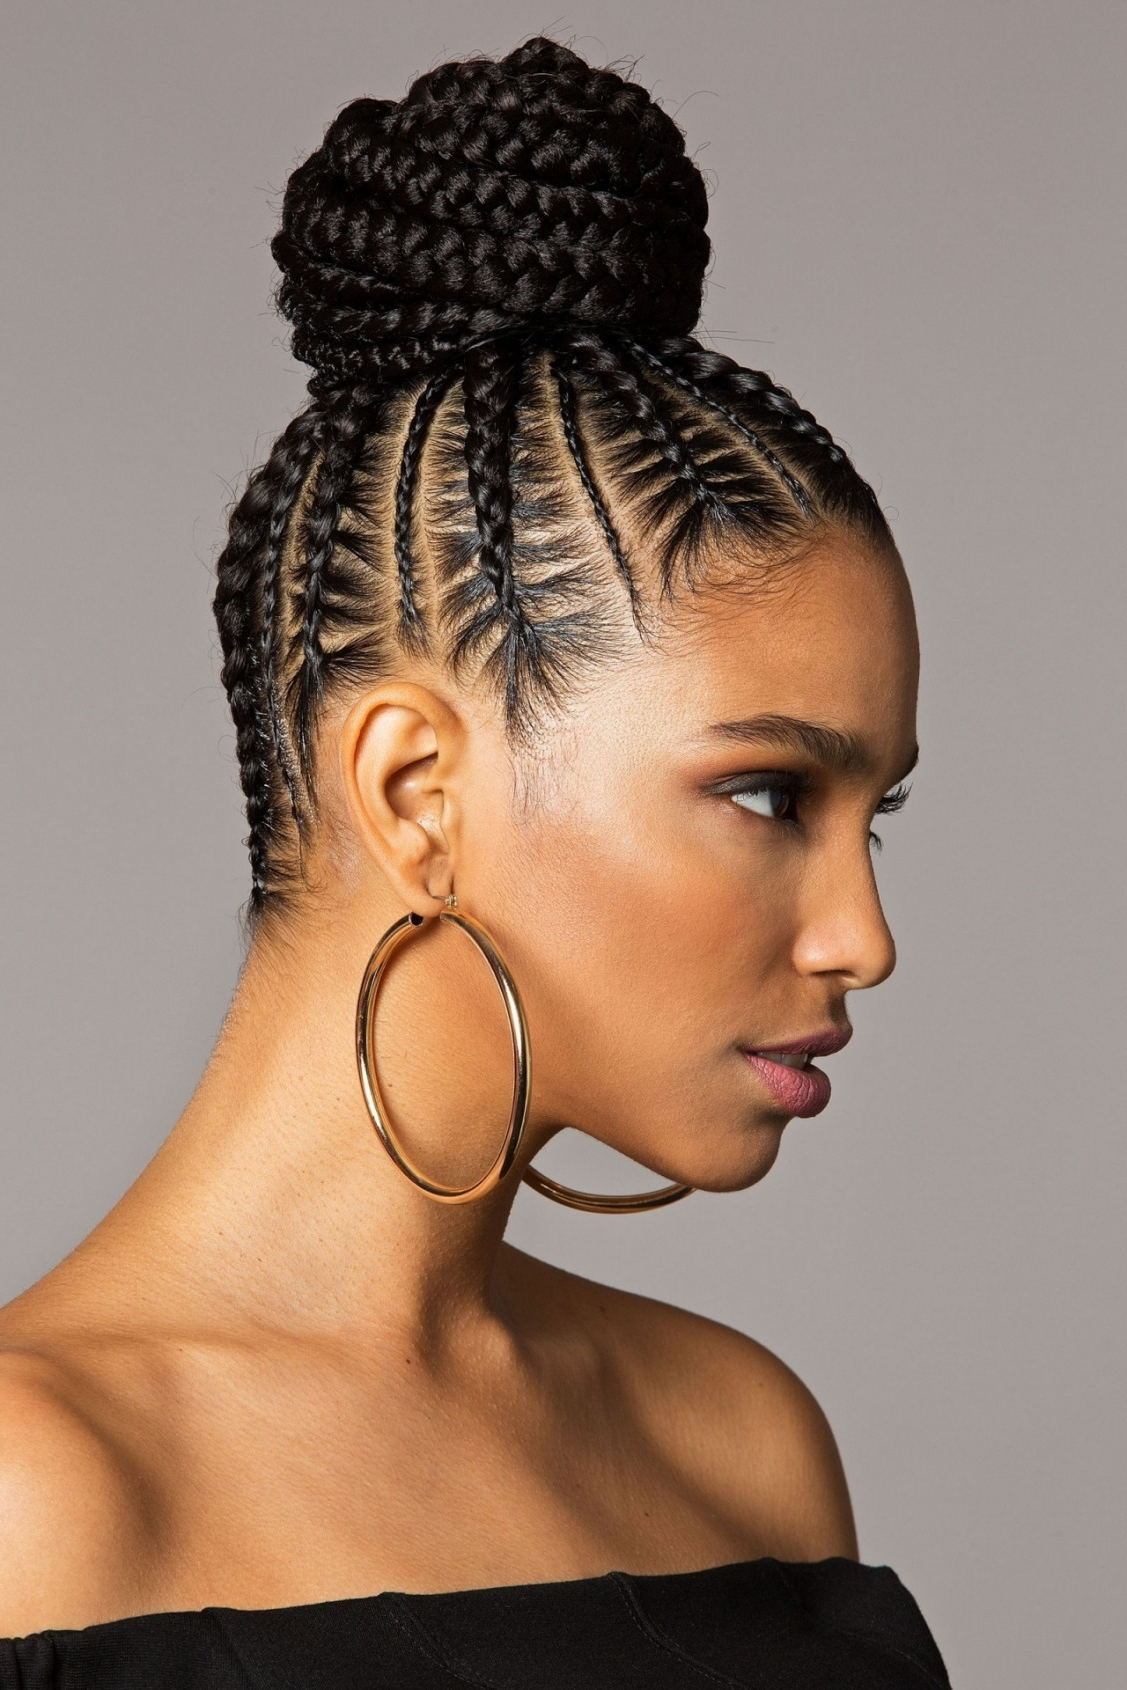 Widely Used Braided Hairstyles For Black Women Intended For Natural Cornrow Hairstyles Black Women Braided Hairstyles (View 15 of 15)